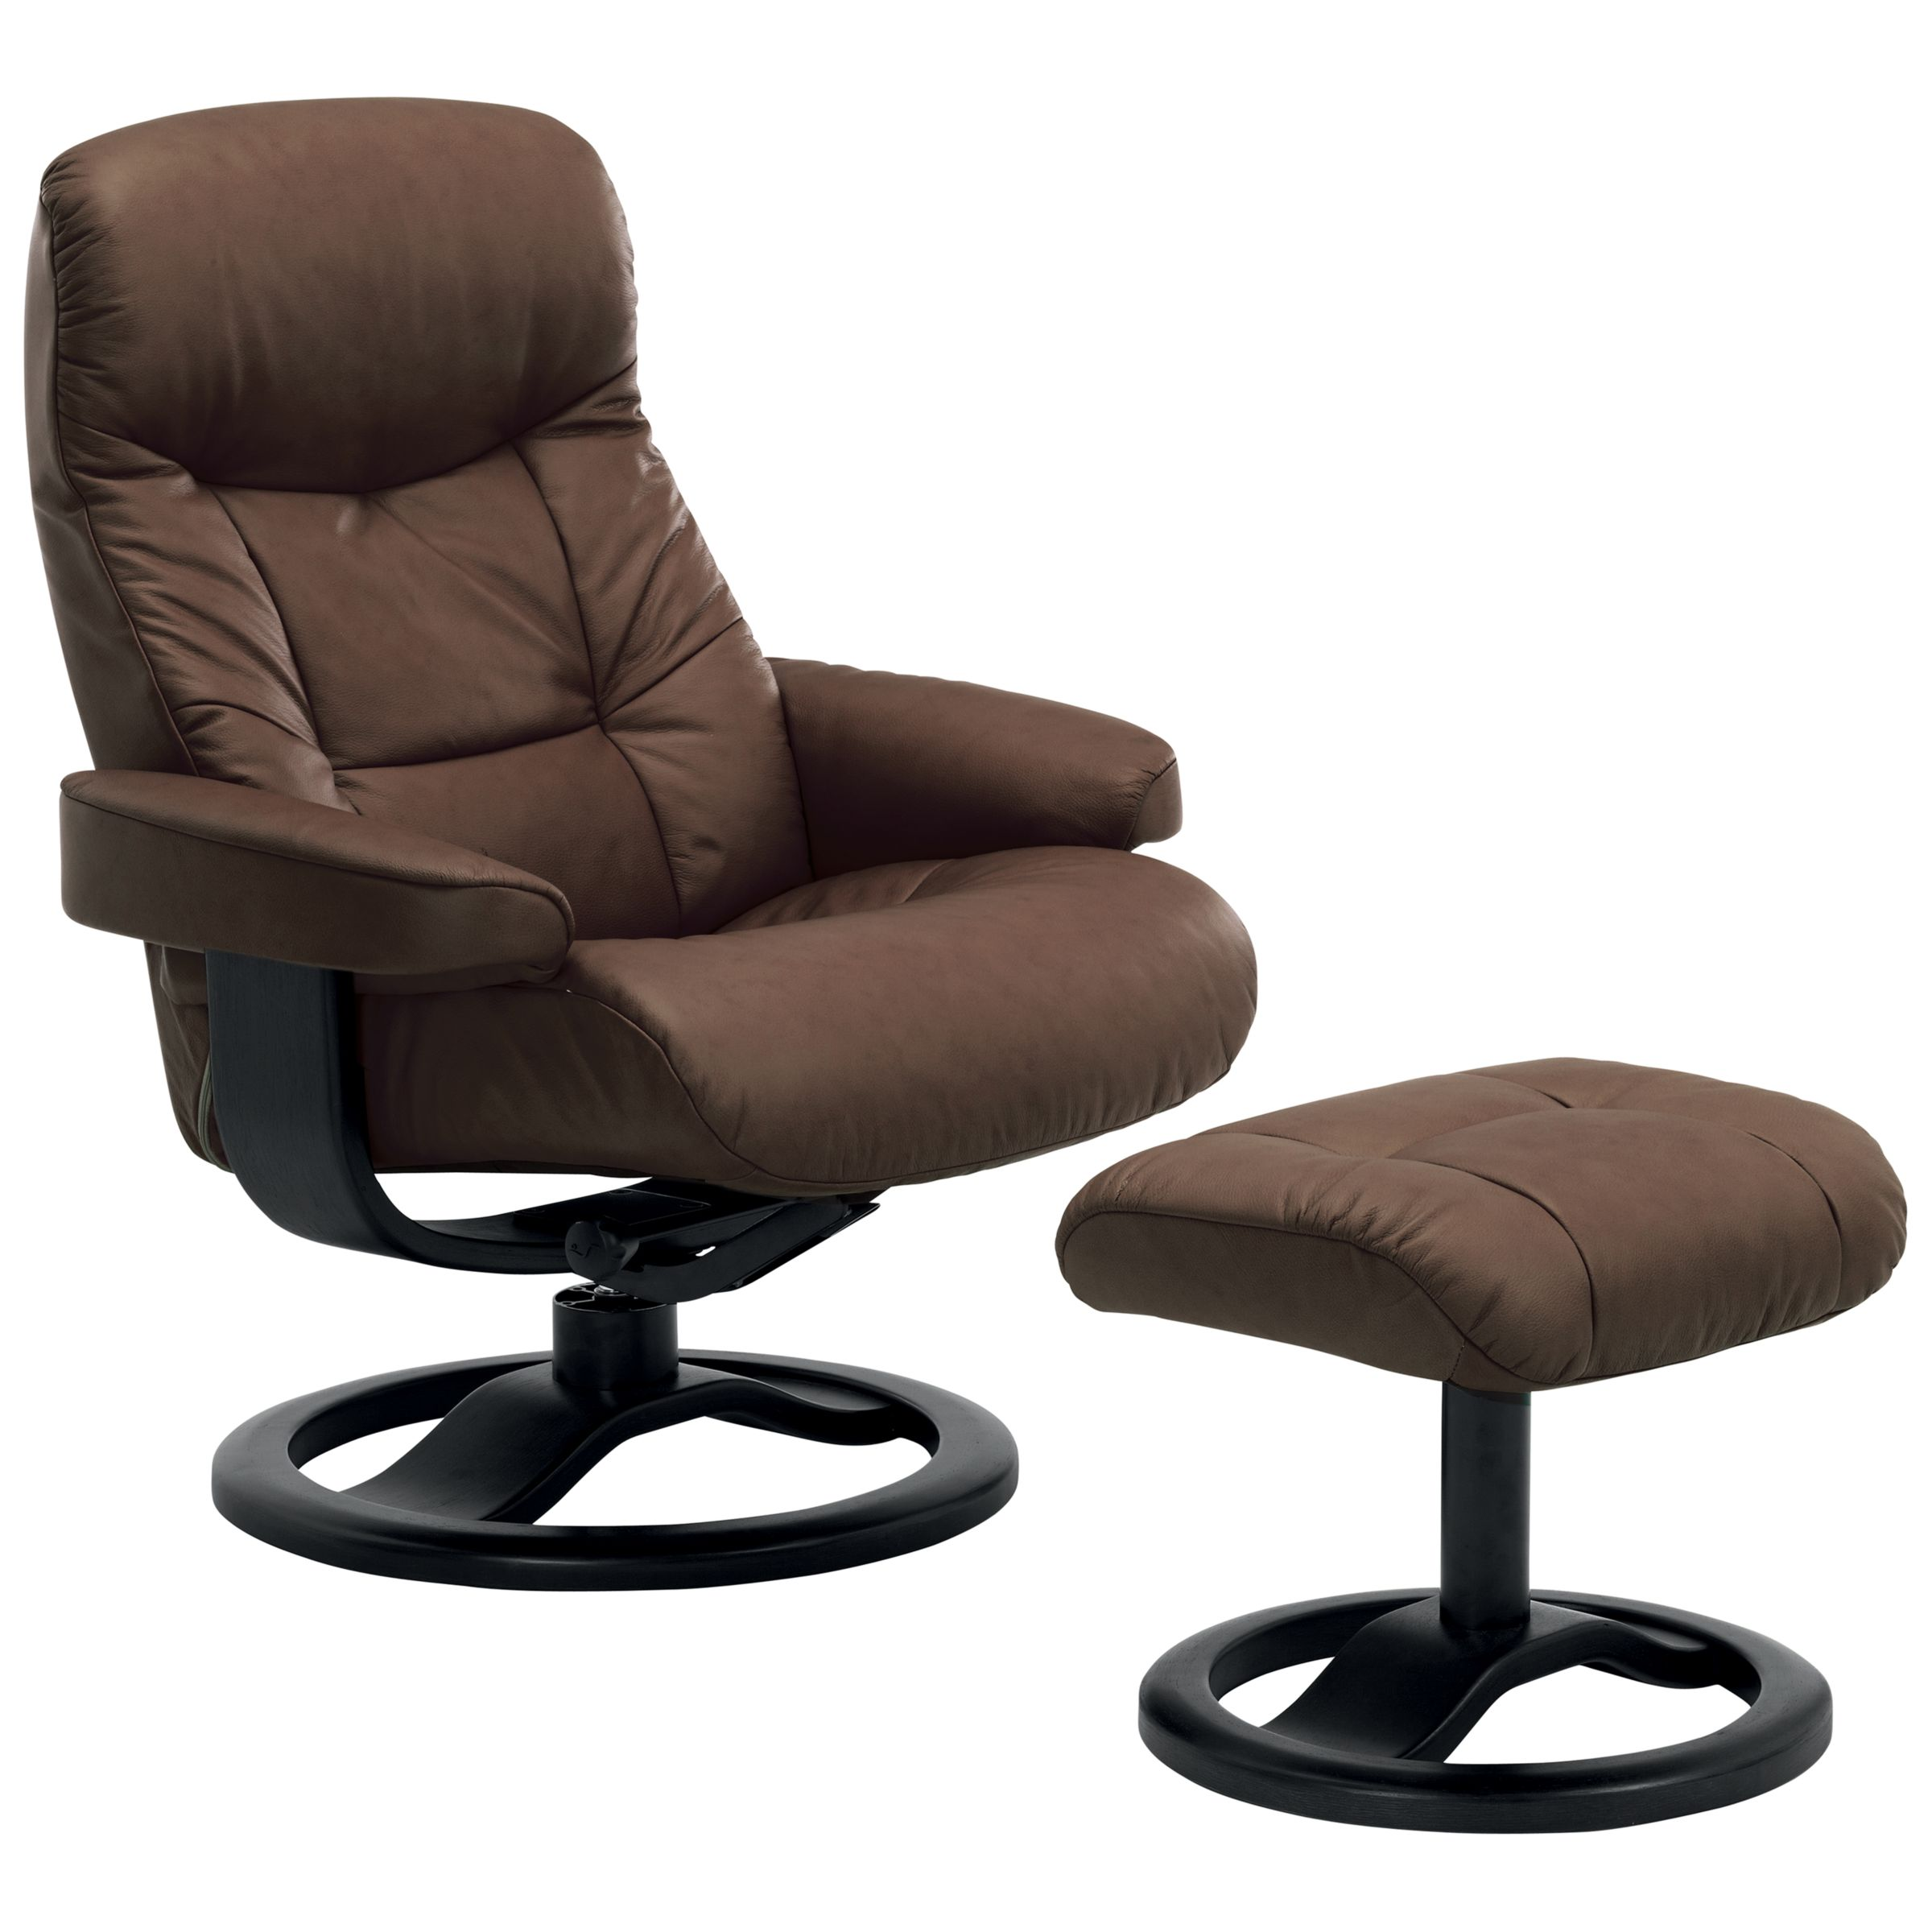 John Lewis Oslo Swivelling Recliner Armchair And Stool, Black Base, Walnut